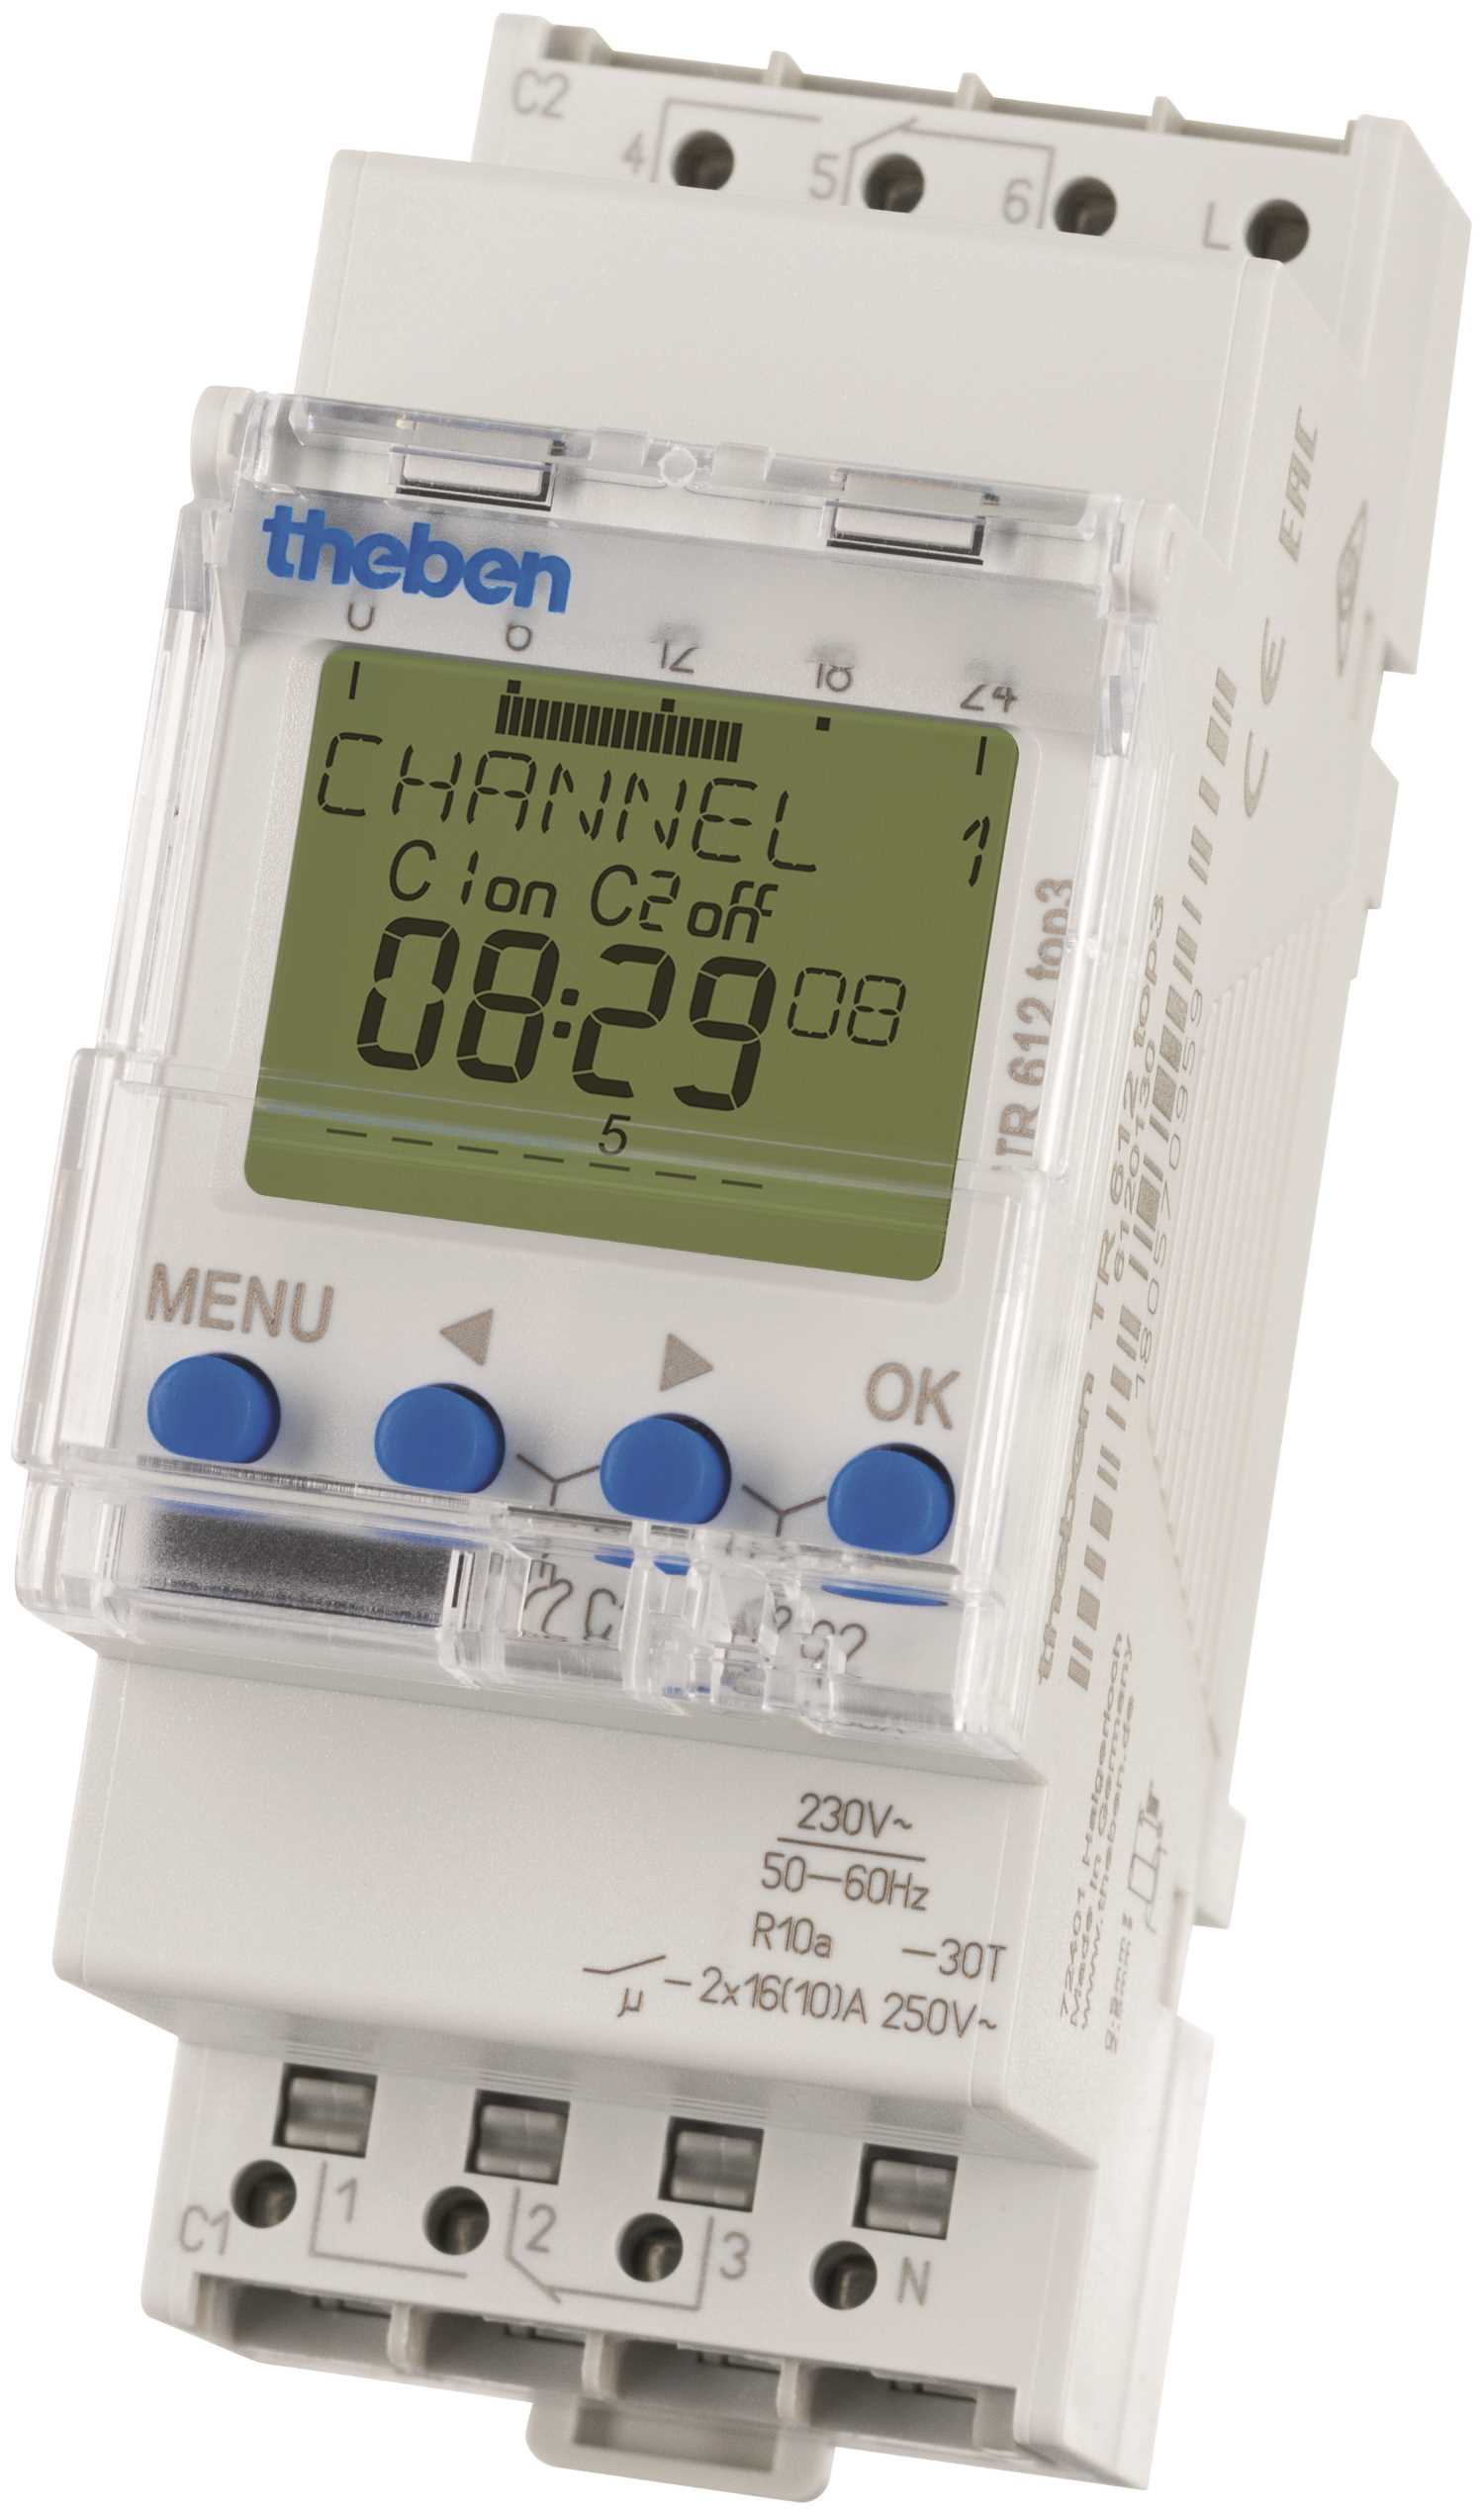 Timeguard TR612TOP3 24 Hr/7 Day 2 Channel 16A Digital Timeswitch